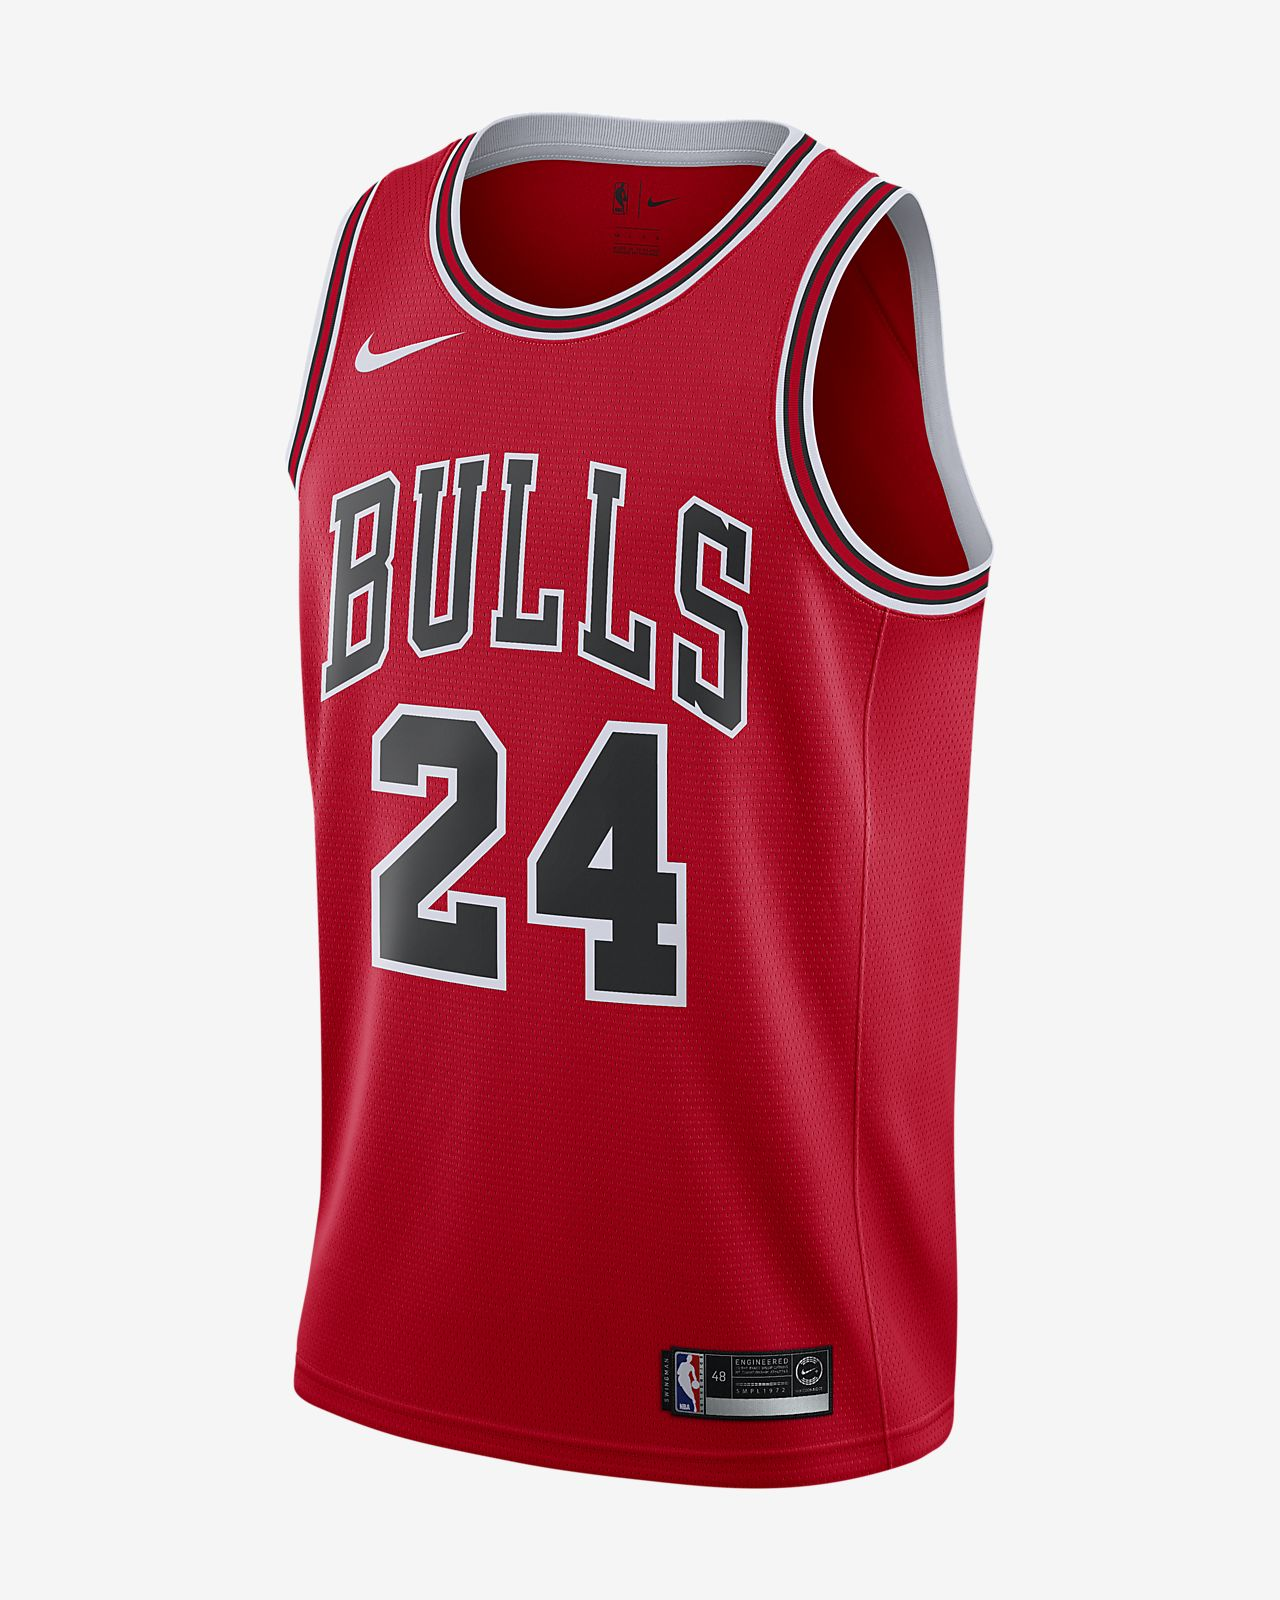 sports shoes 183a5 08669 Maillot connecté Nike NBA Lauri Markkanen Icon Edition Swingman (Chicago  Bulls) pour Homme